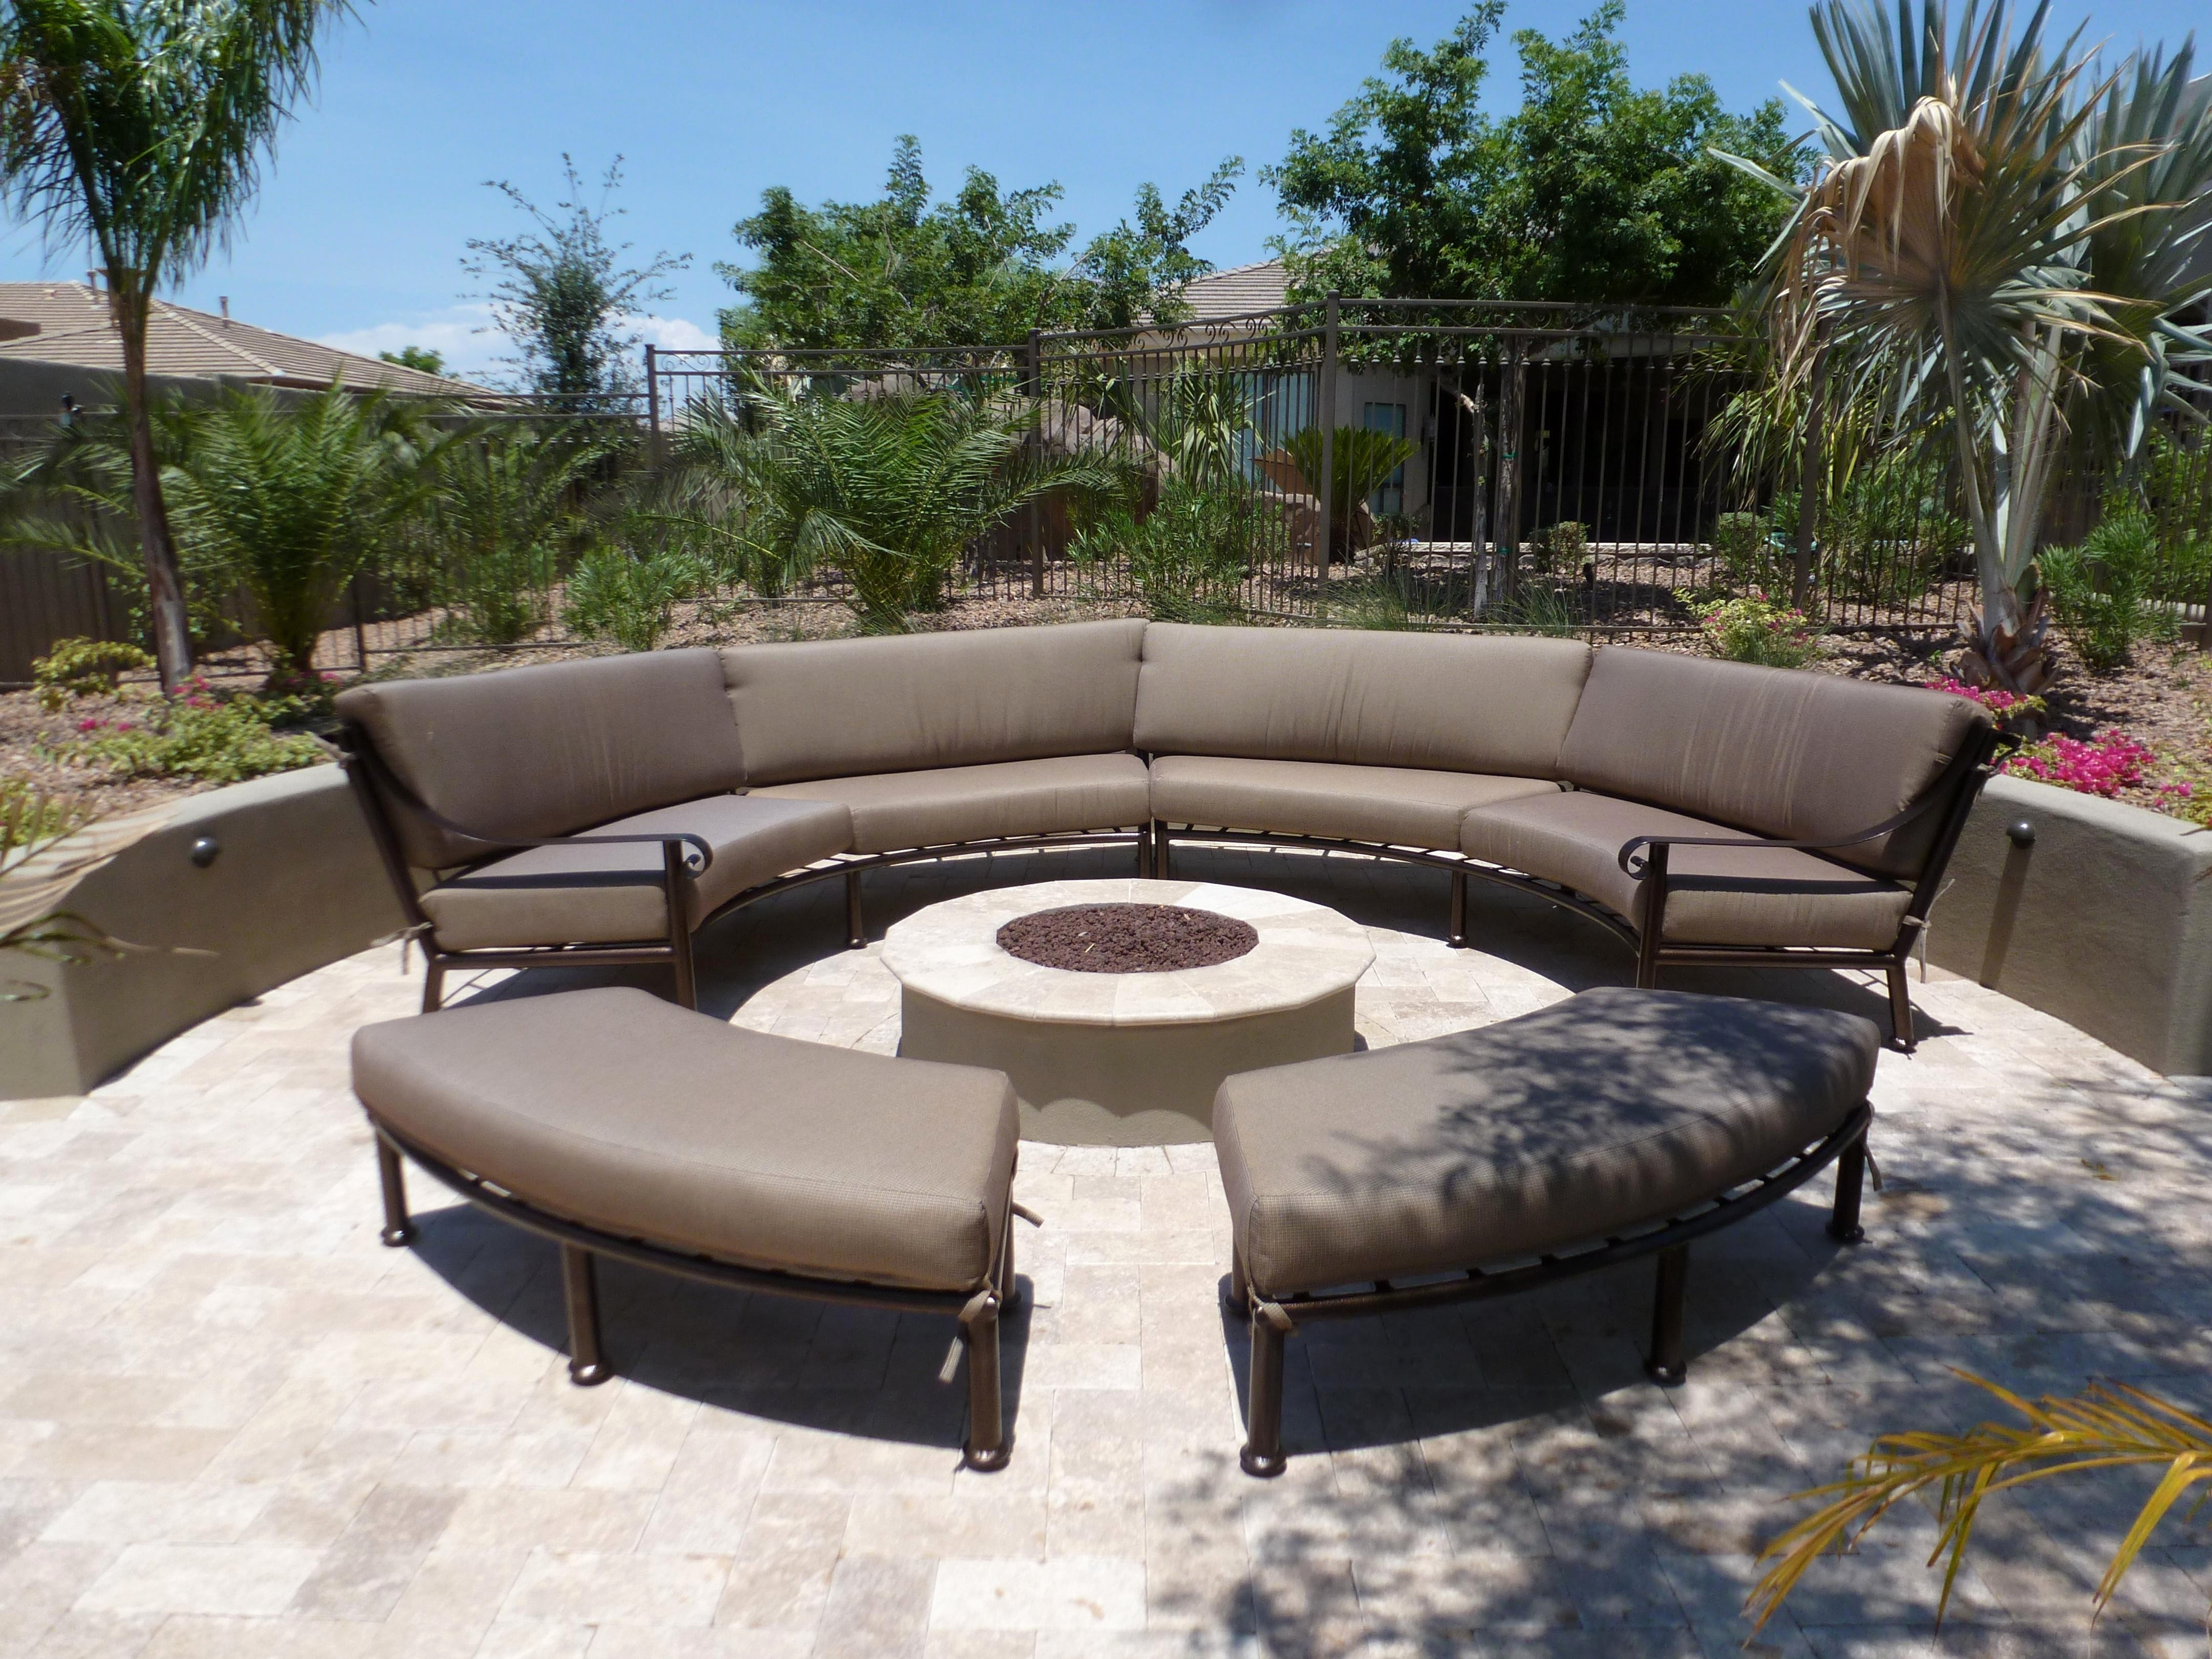 Outdoor Patio Kitchen Inspirational Outdoors Furniture Furniture 0d